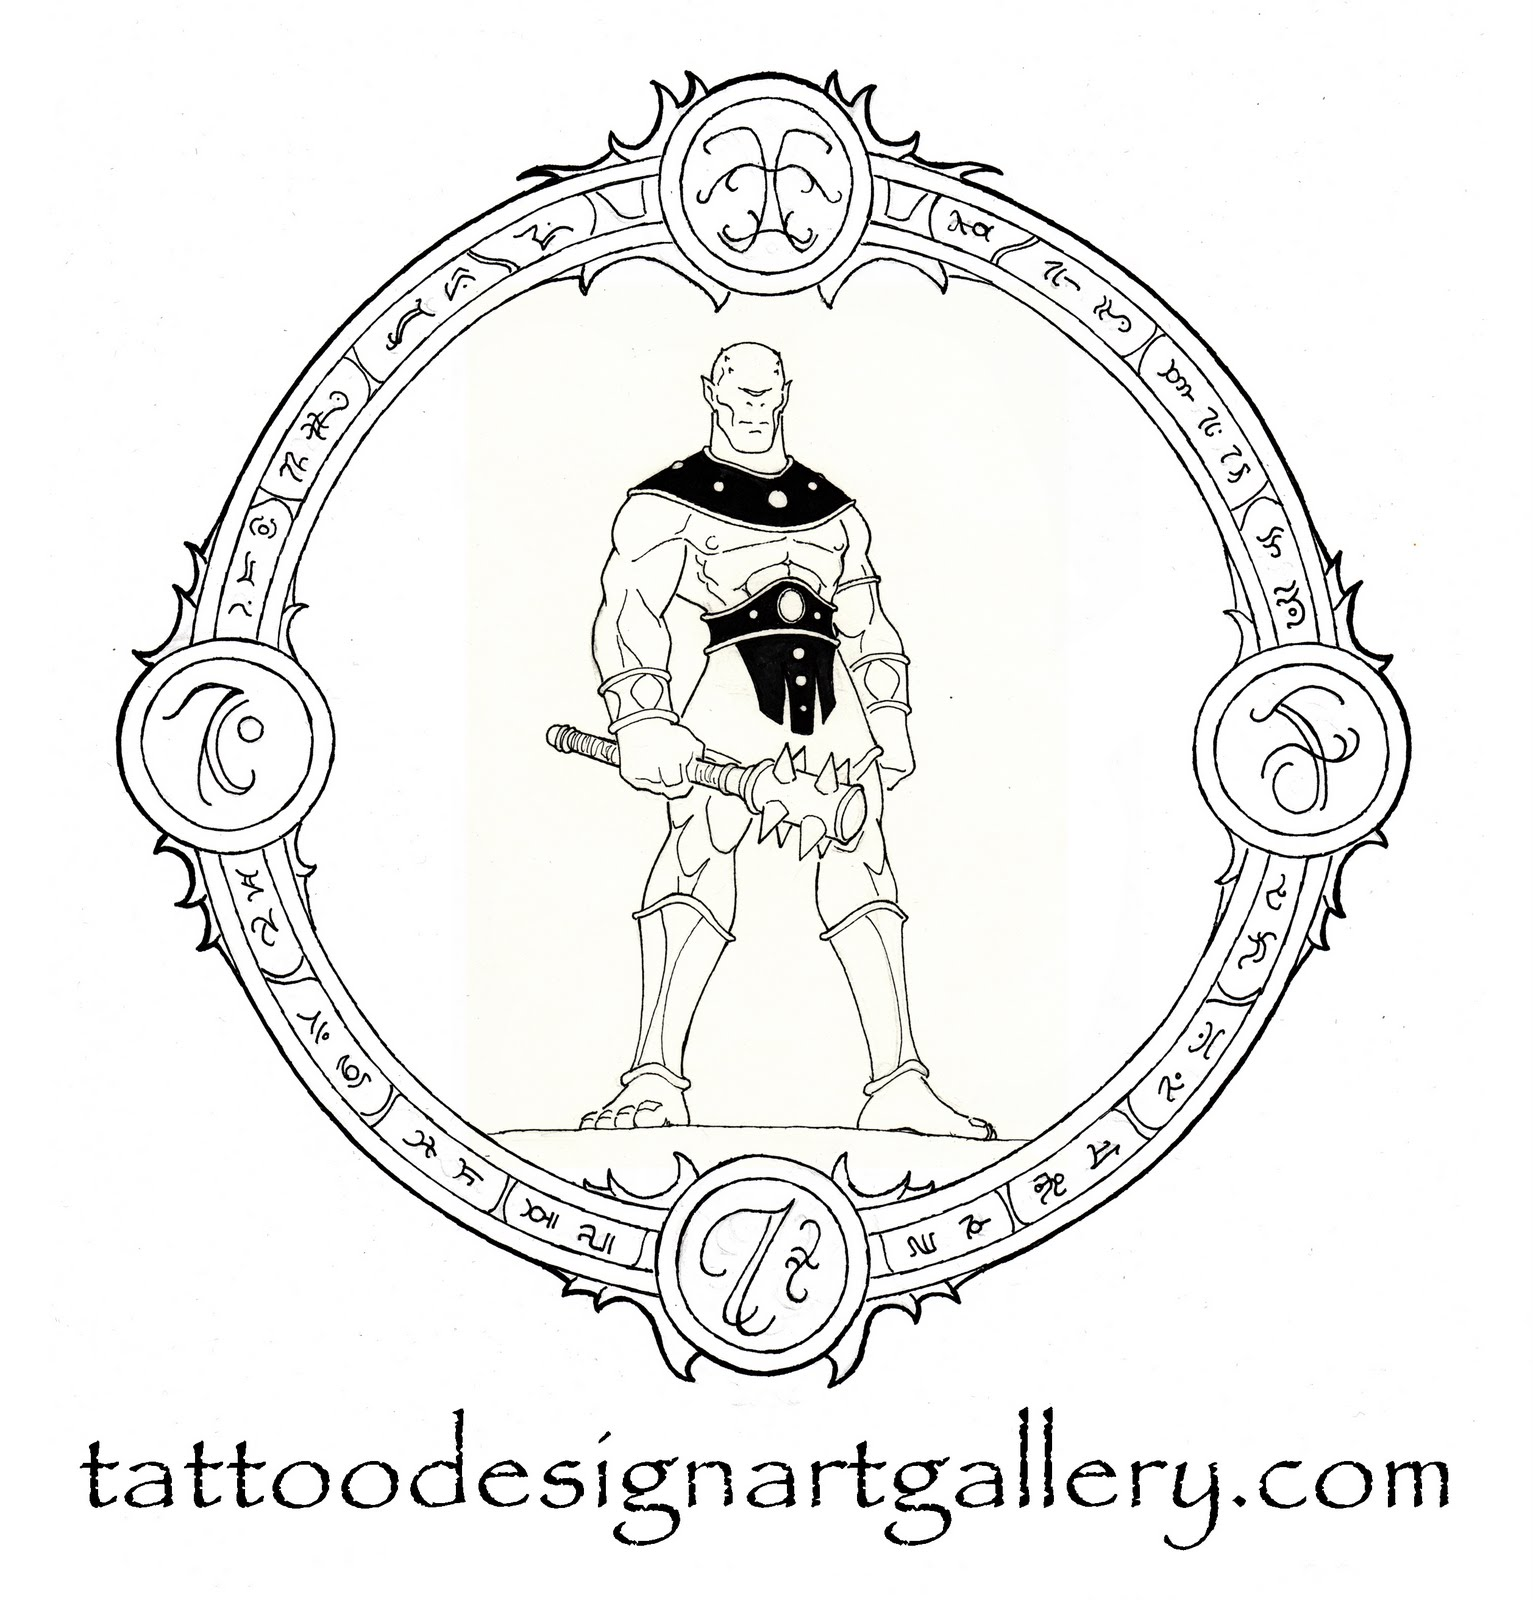 http://1.bp.blogspot.com/-EW5PEdZH8TA/TnAf7LbTTlI/AAAAAAAAAEQ/Yh8B9HIcQ_I/s1600/Cyclop-Tattoo-Art-Design-Greek-Mythology.jpg